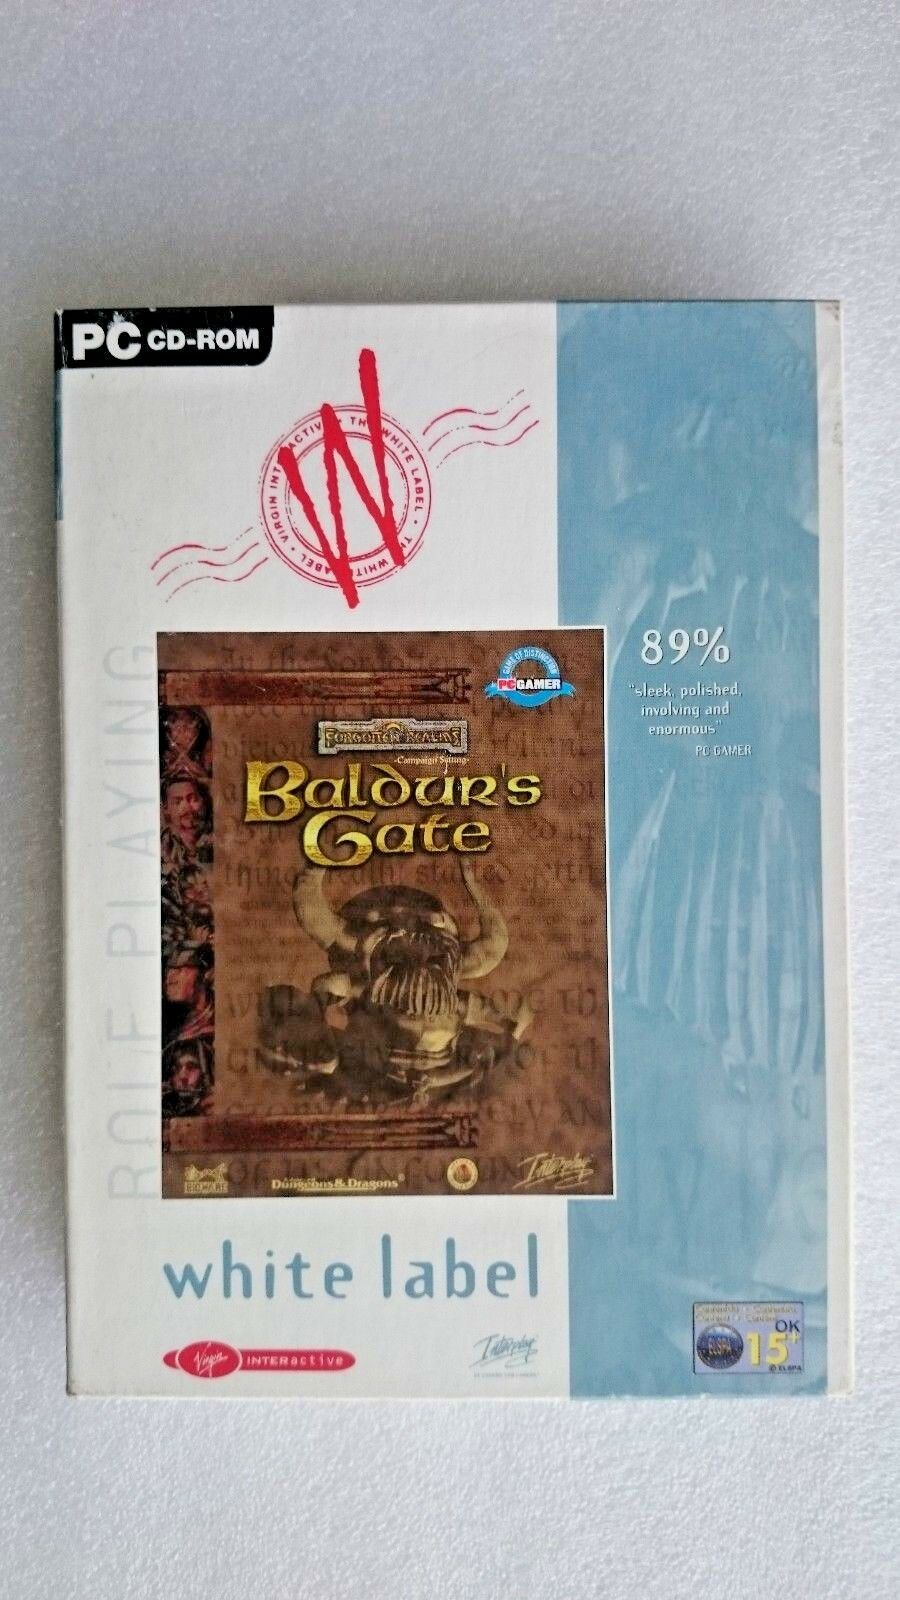 Baldur's Gate  PC Game Boxed Edition